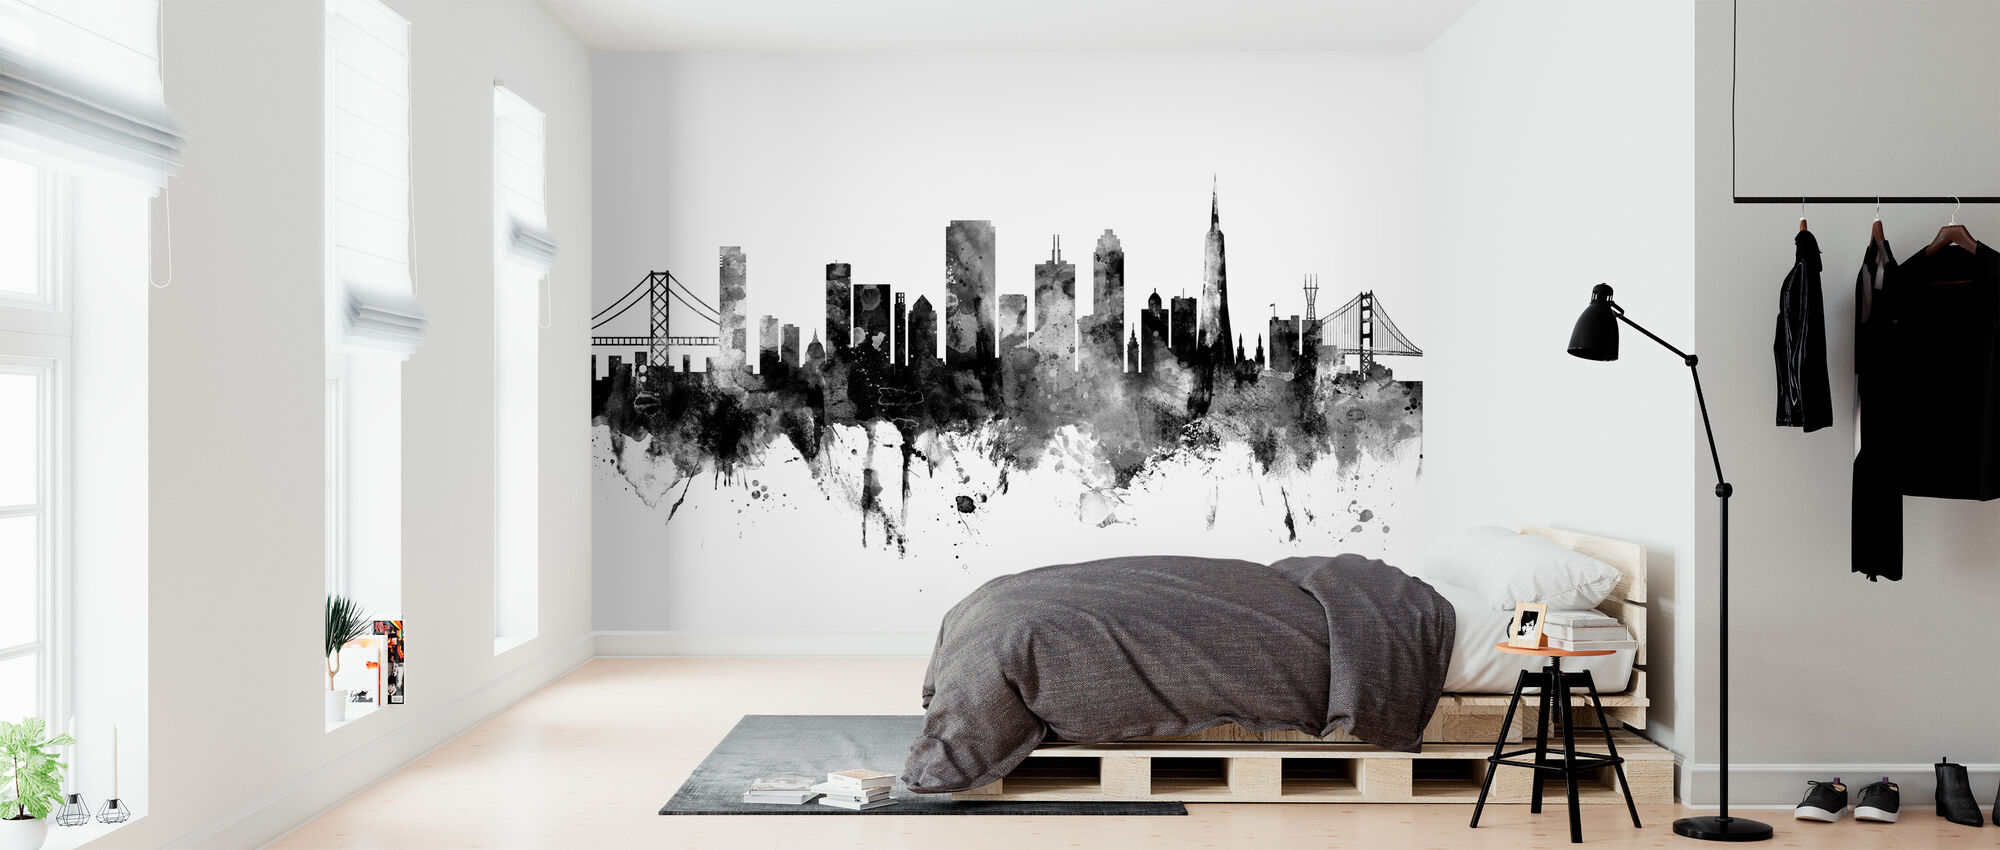 San Francisco City Skyline, black and white - Wallpaper - Bedroom